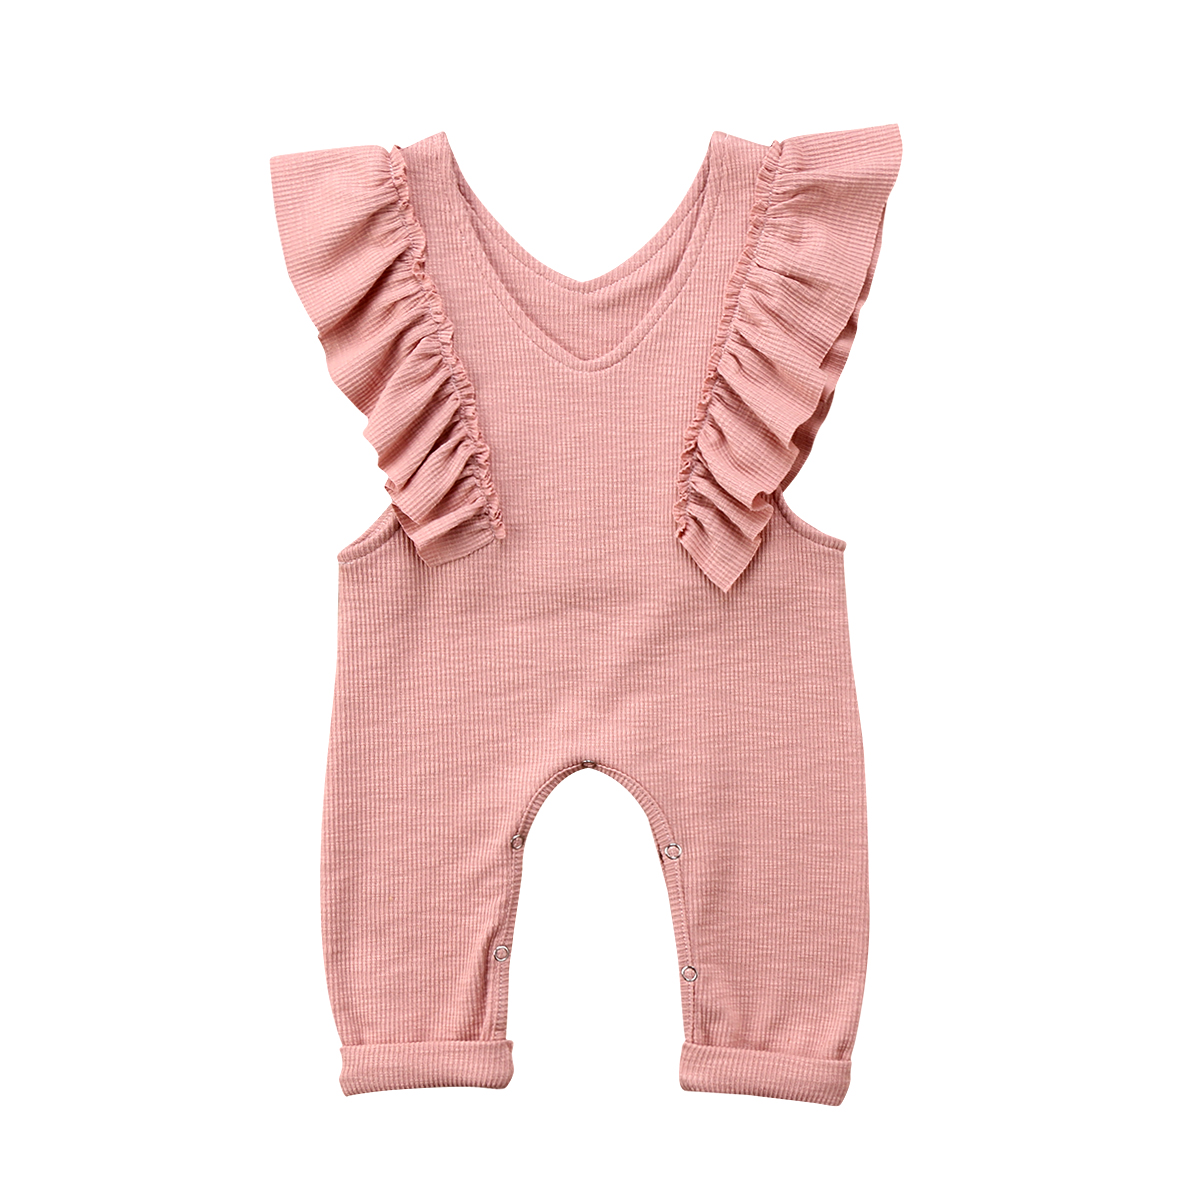 c4af033c7a75c 30 Adorable Kids' Amazon Outfits | Fashion & Style | Glitter, Inc.